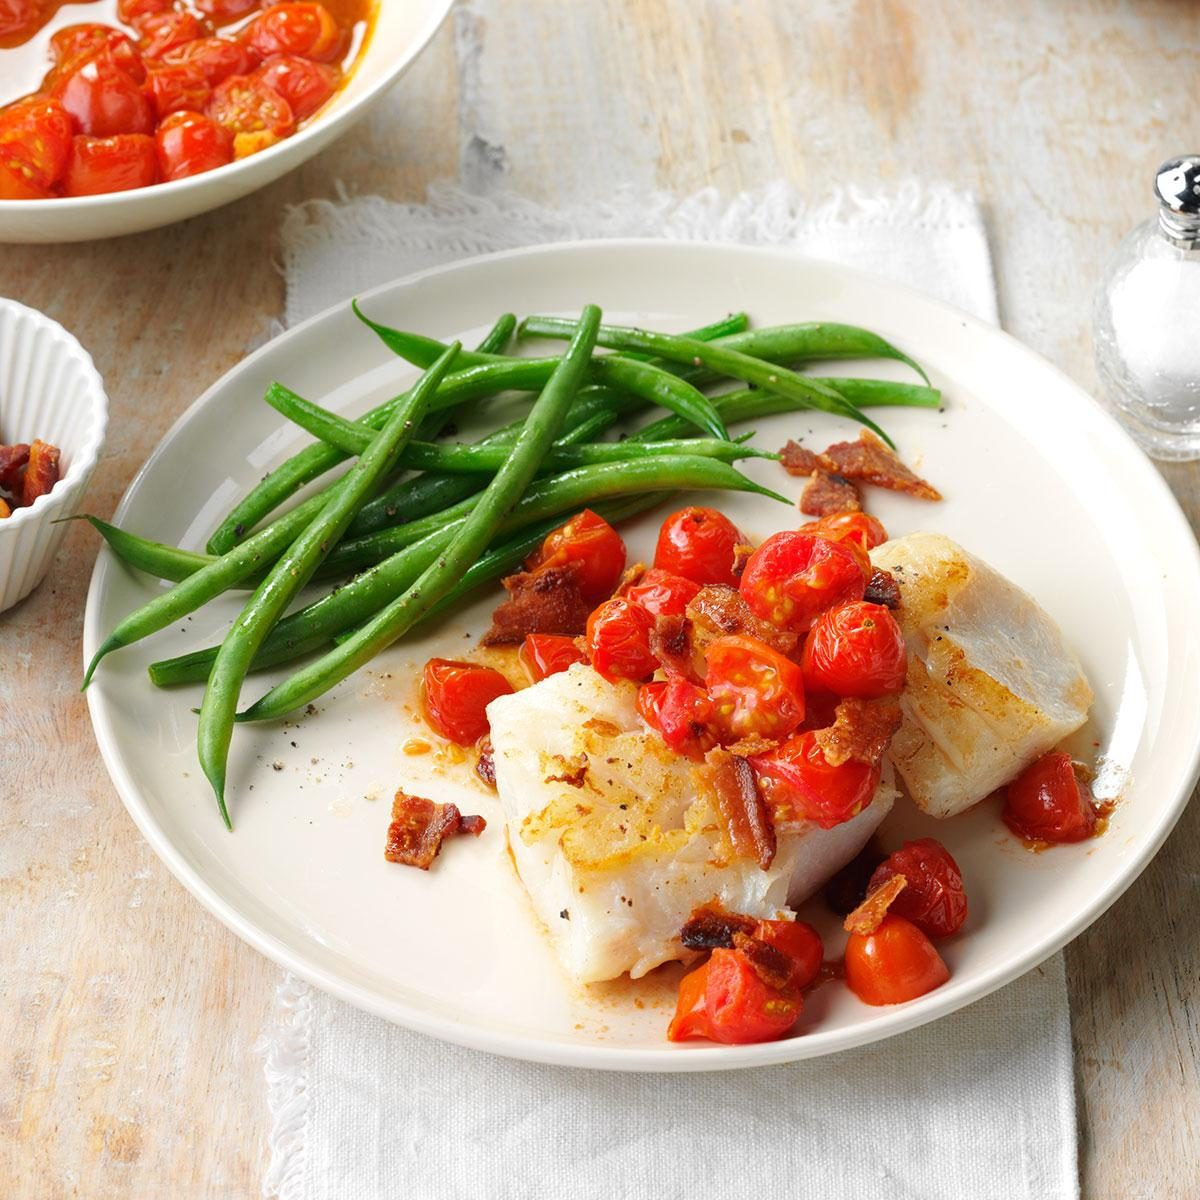 Day 9: Cod with Bacon & Balsamic Tomatoes